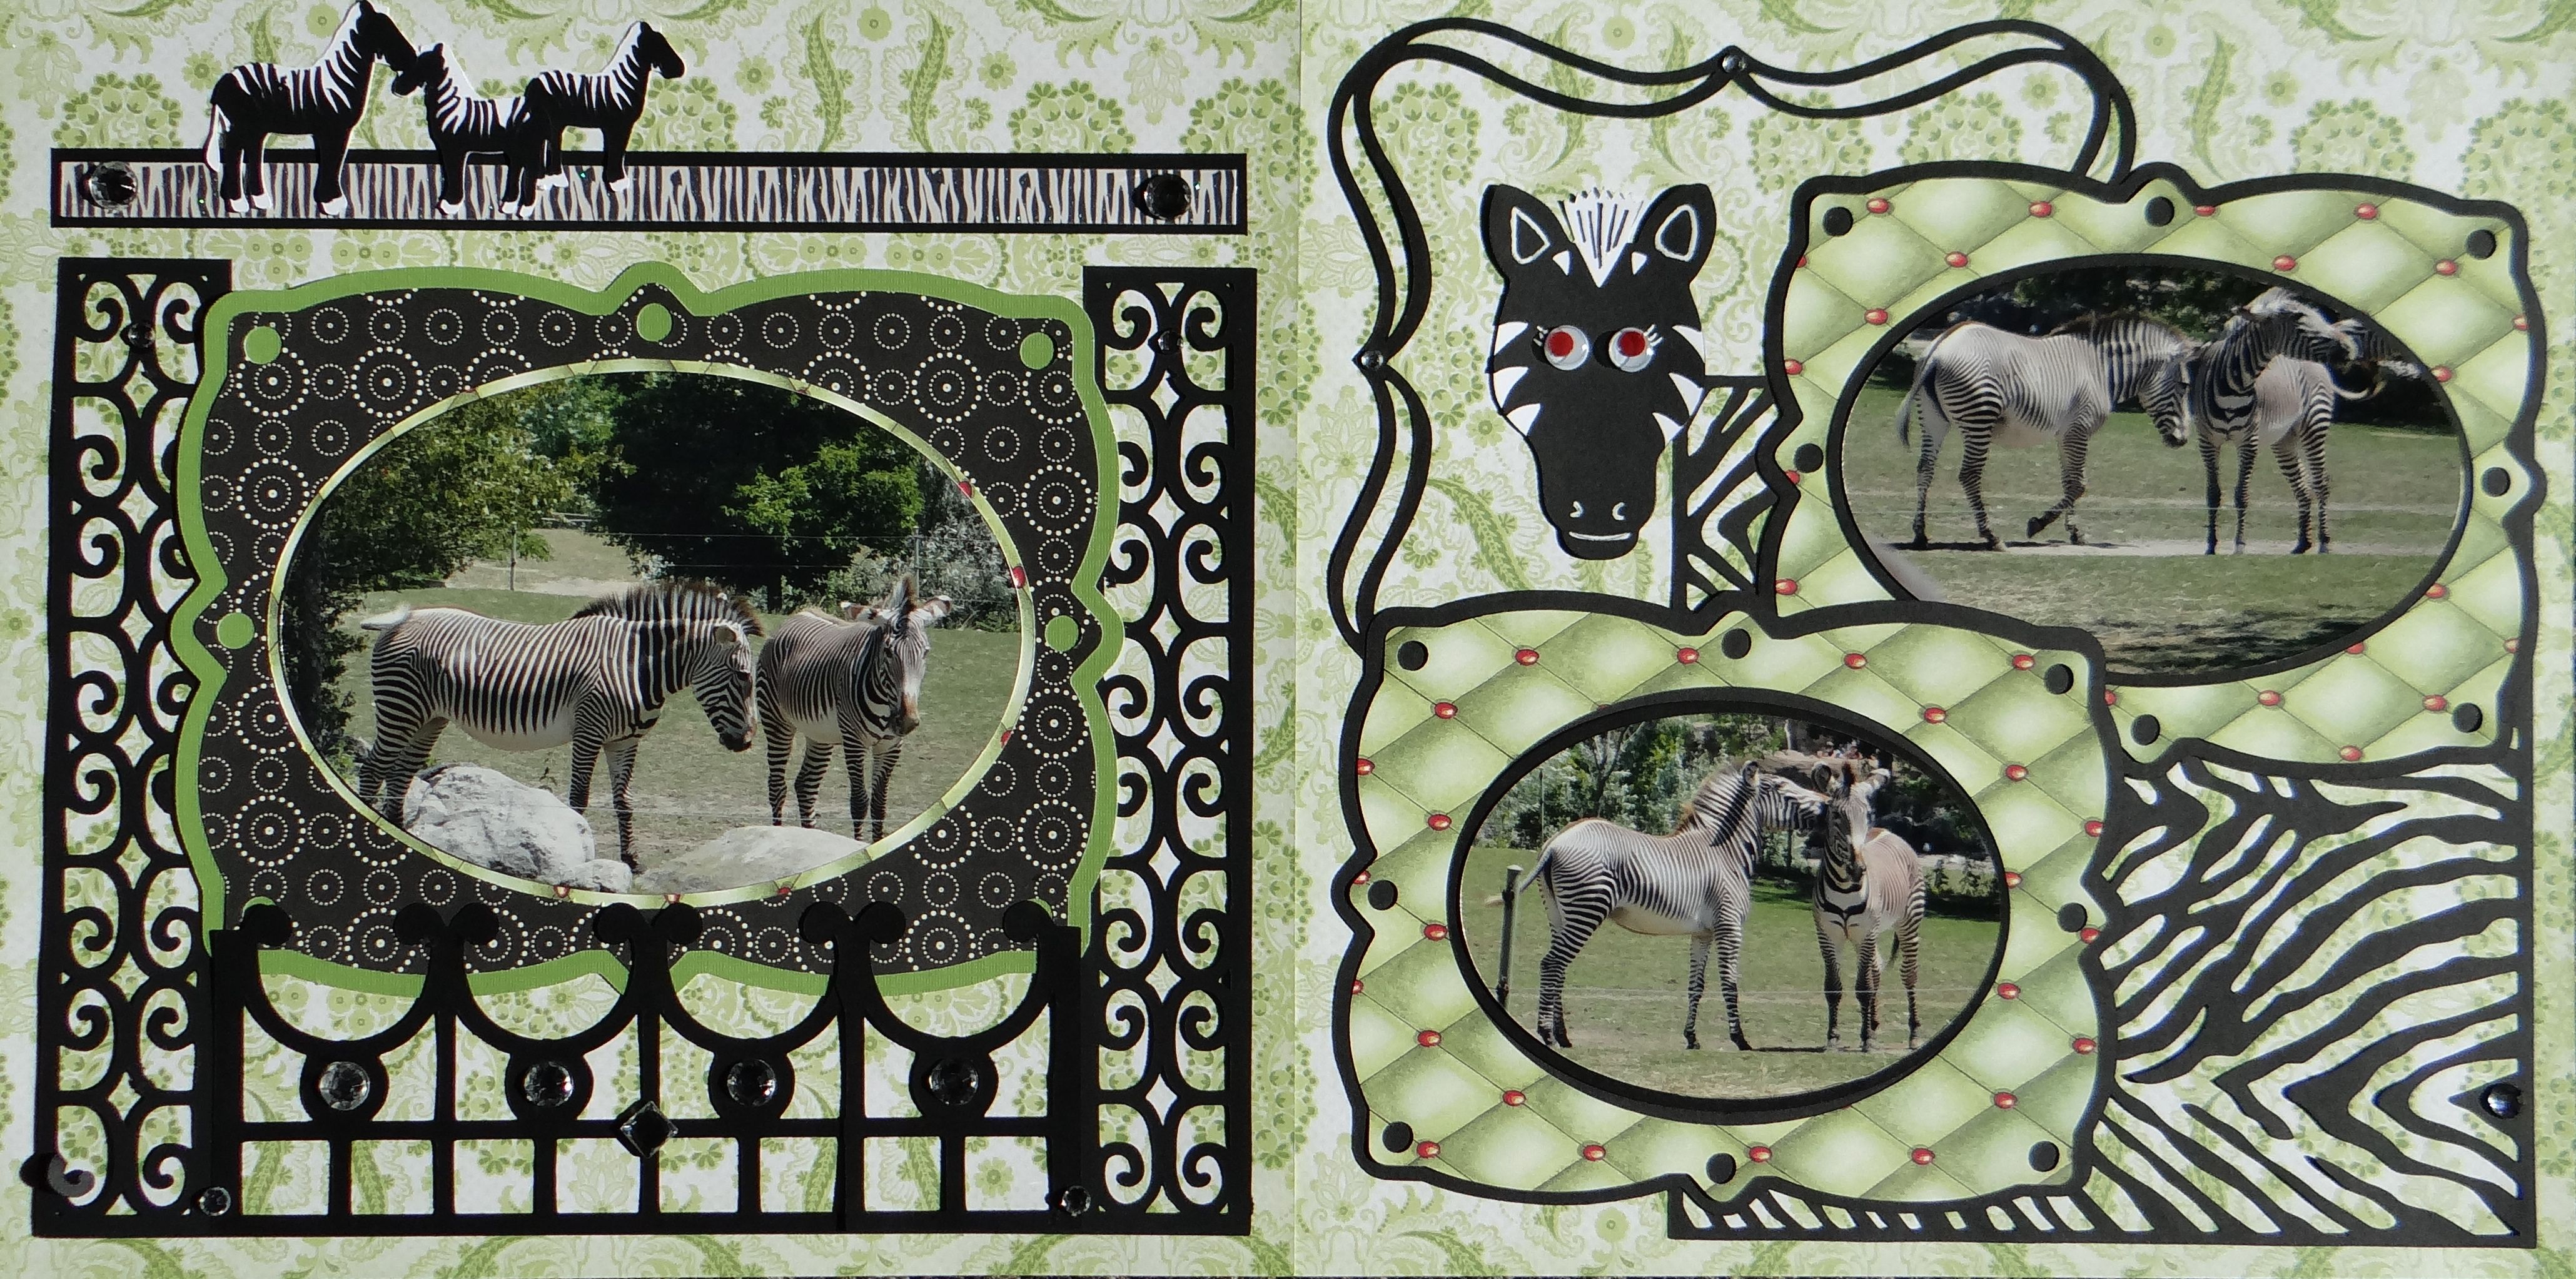 Zoo animal scrapbook ideas - Scrapbook Page Fighting Zebras At The Zoo 2 Page Animal Layout From Everyday Life